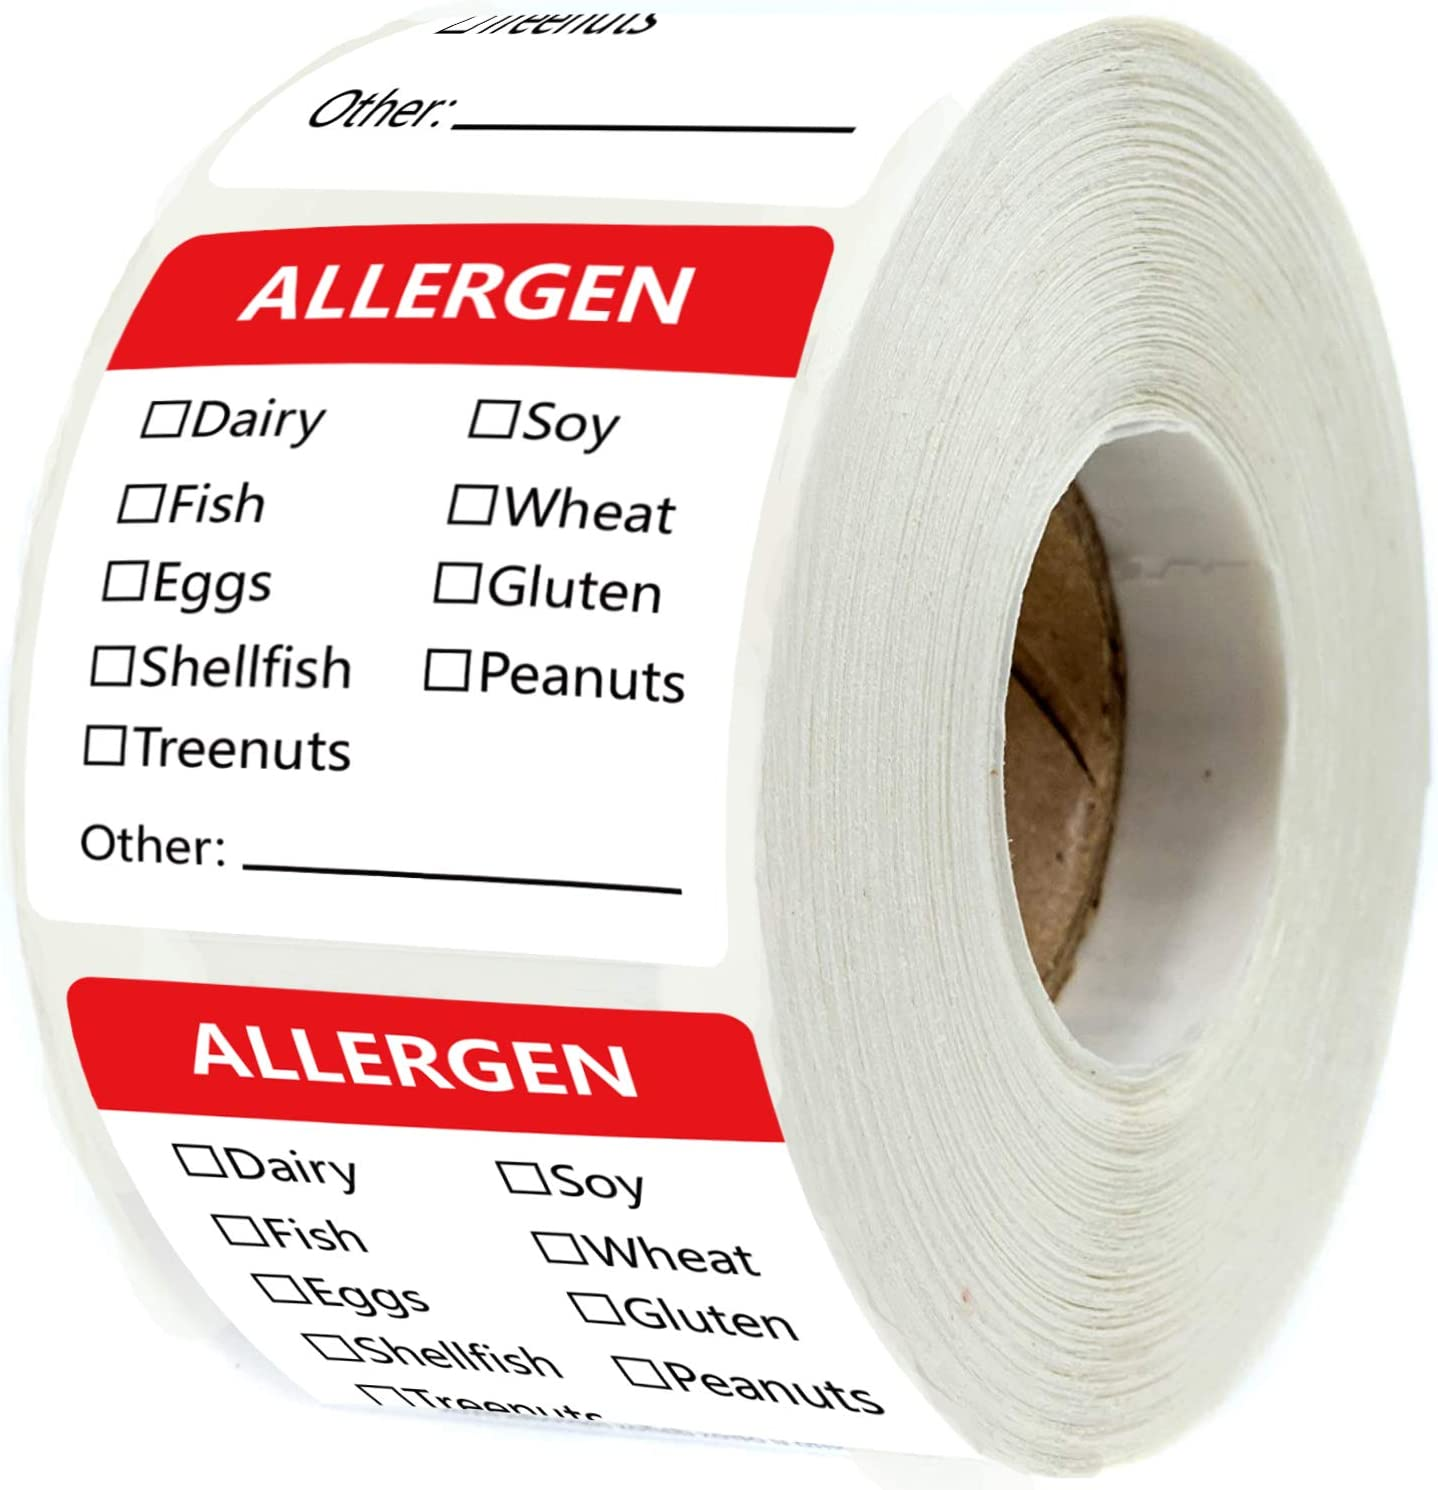 Allergen Warning Stickers 1.8 X 2 Inch - Fluorescent Red Food Rotation Labels Removable Allergen Label 500 Adhesive Allergy Stickers (Red, 1.8 X 2 inch)